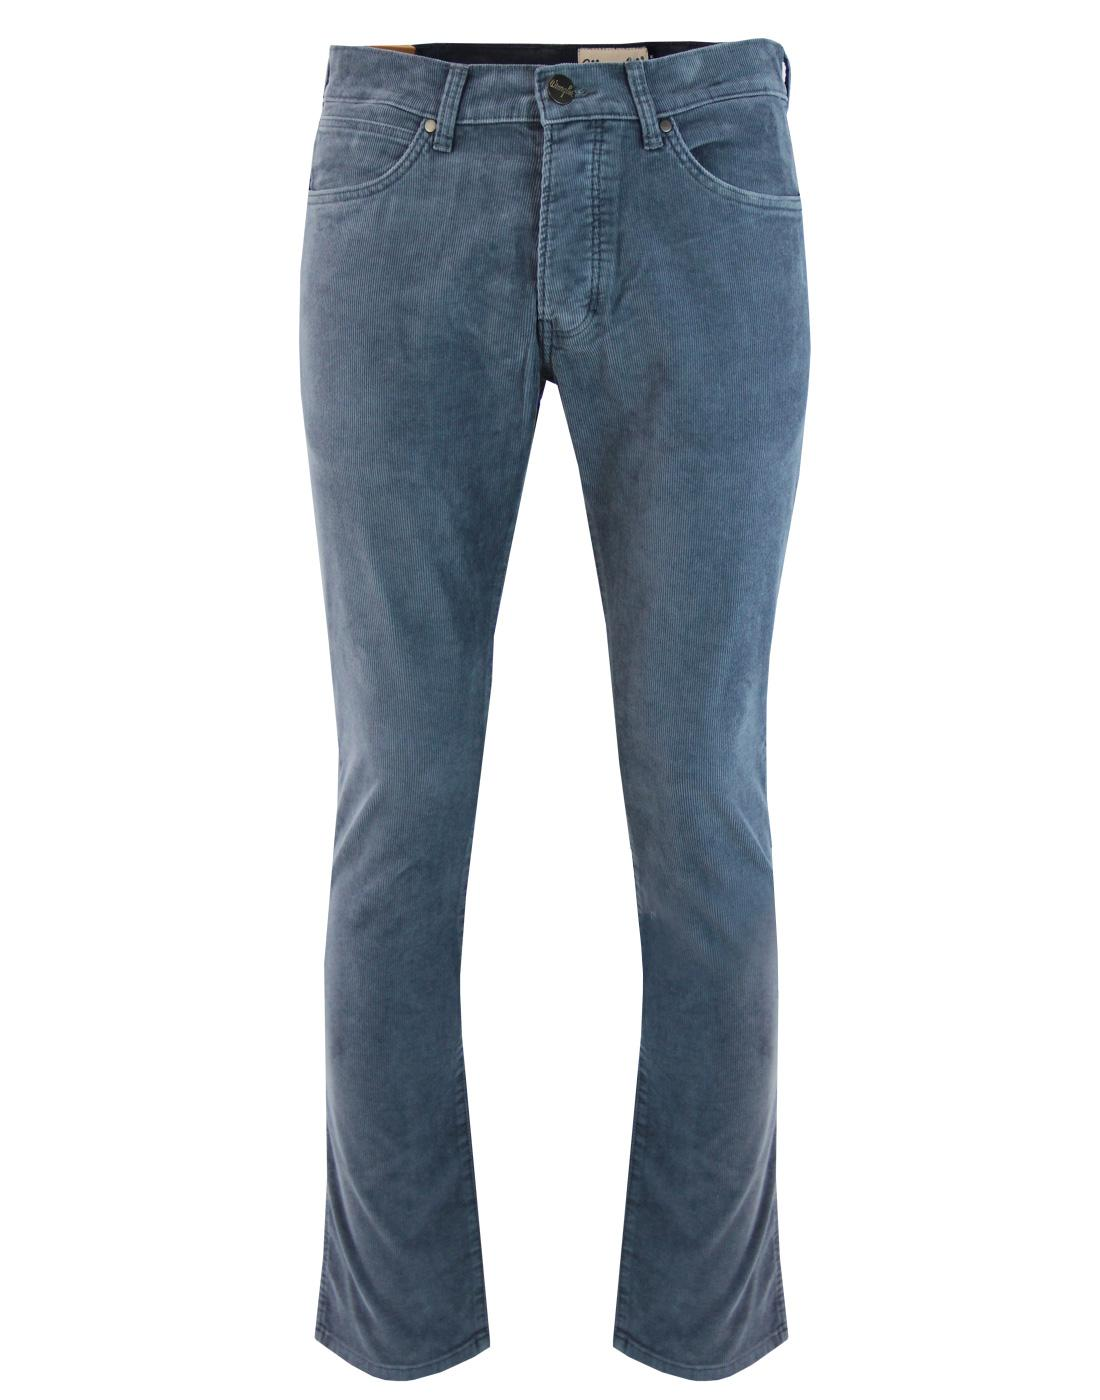 Spencer WRANGLER Grey Eyes Blue Retro Slim Cords